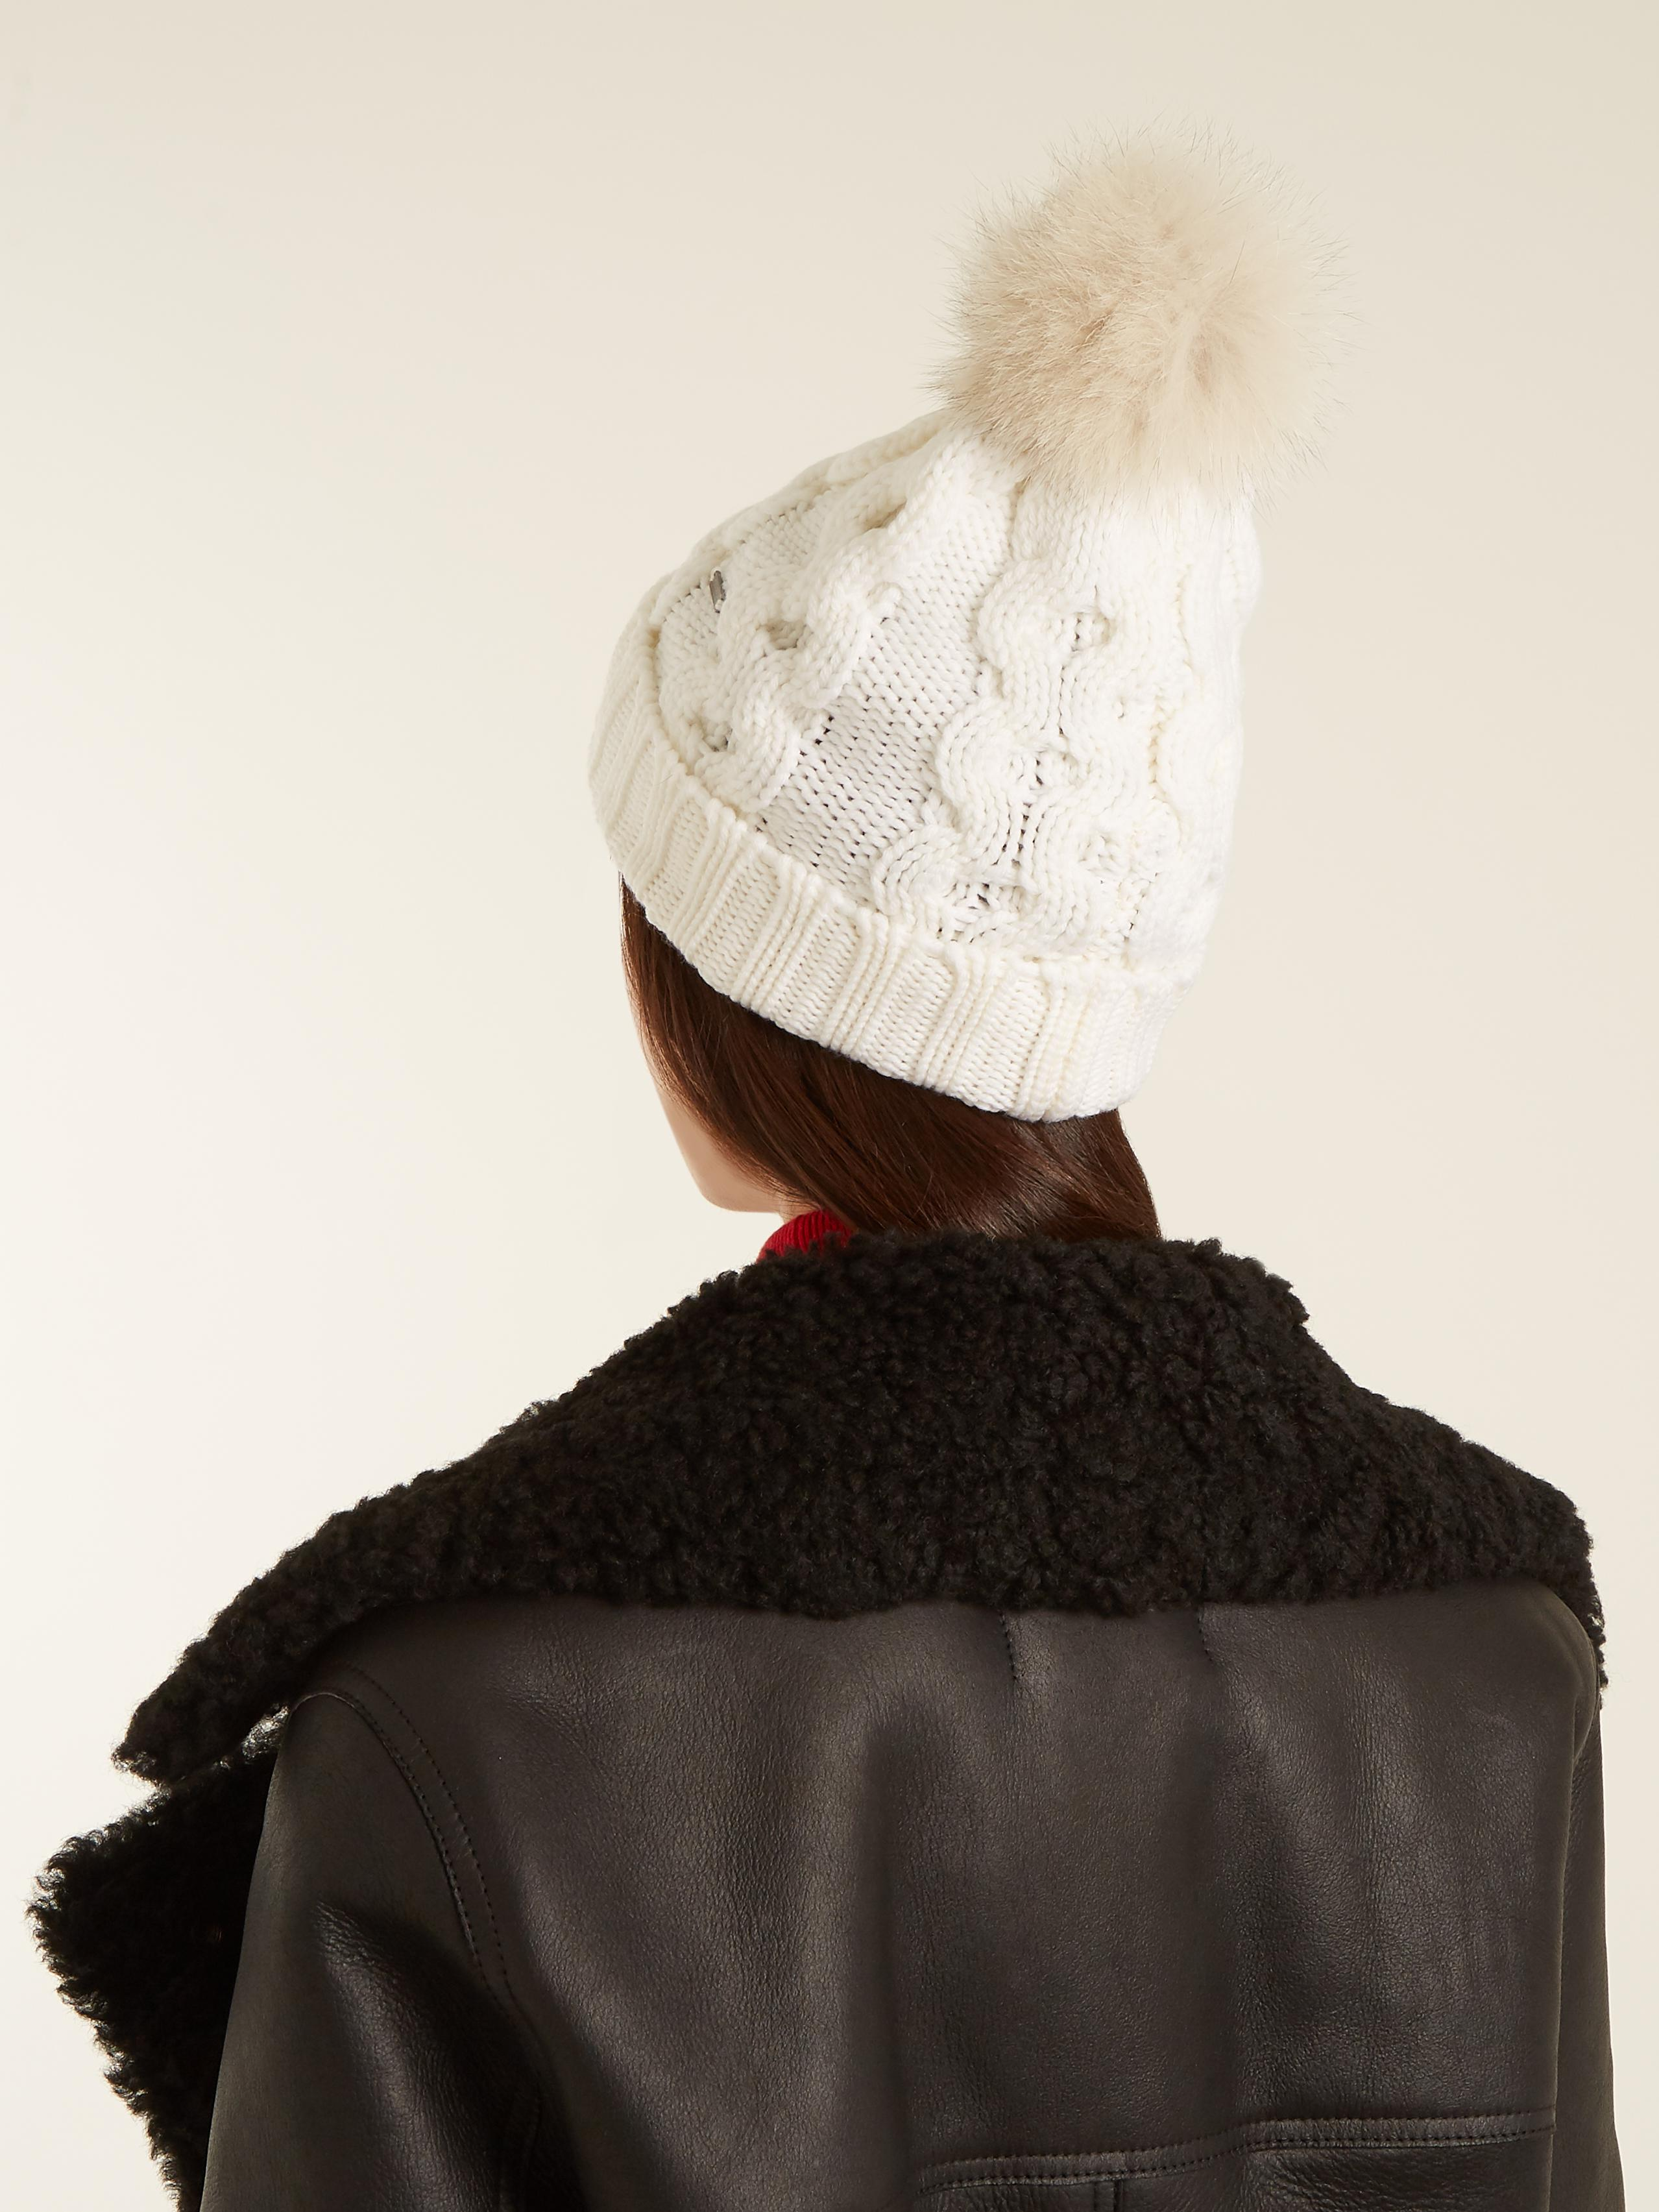 bdf12c9165e5d Lyst - Woolrich Serenity Fur-pompom Cable-knit Wool Beanie Hat in White